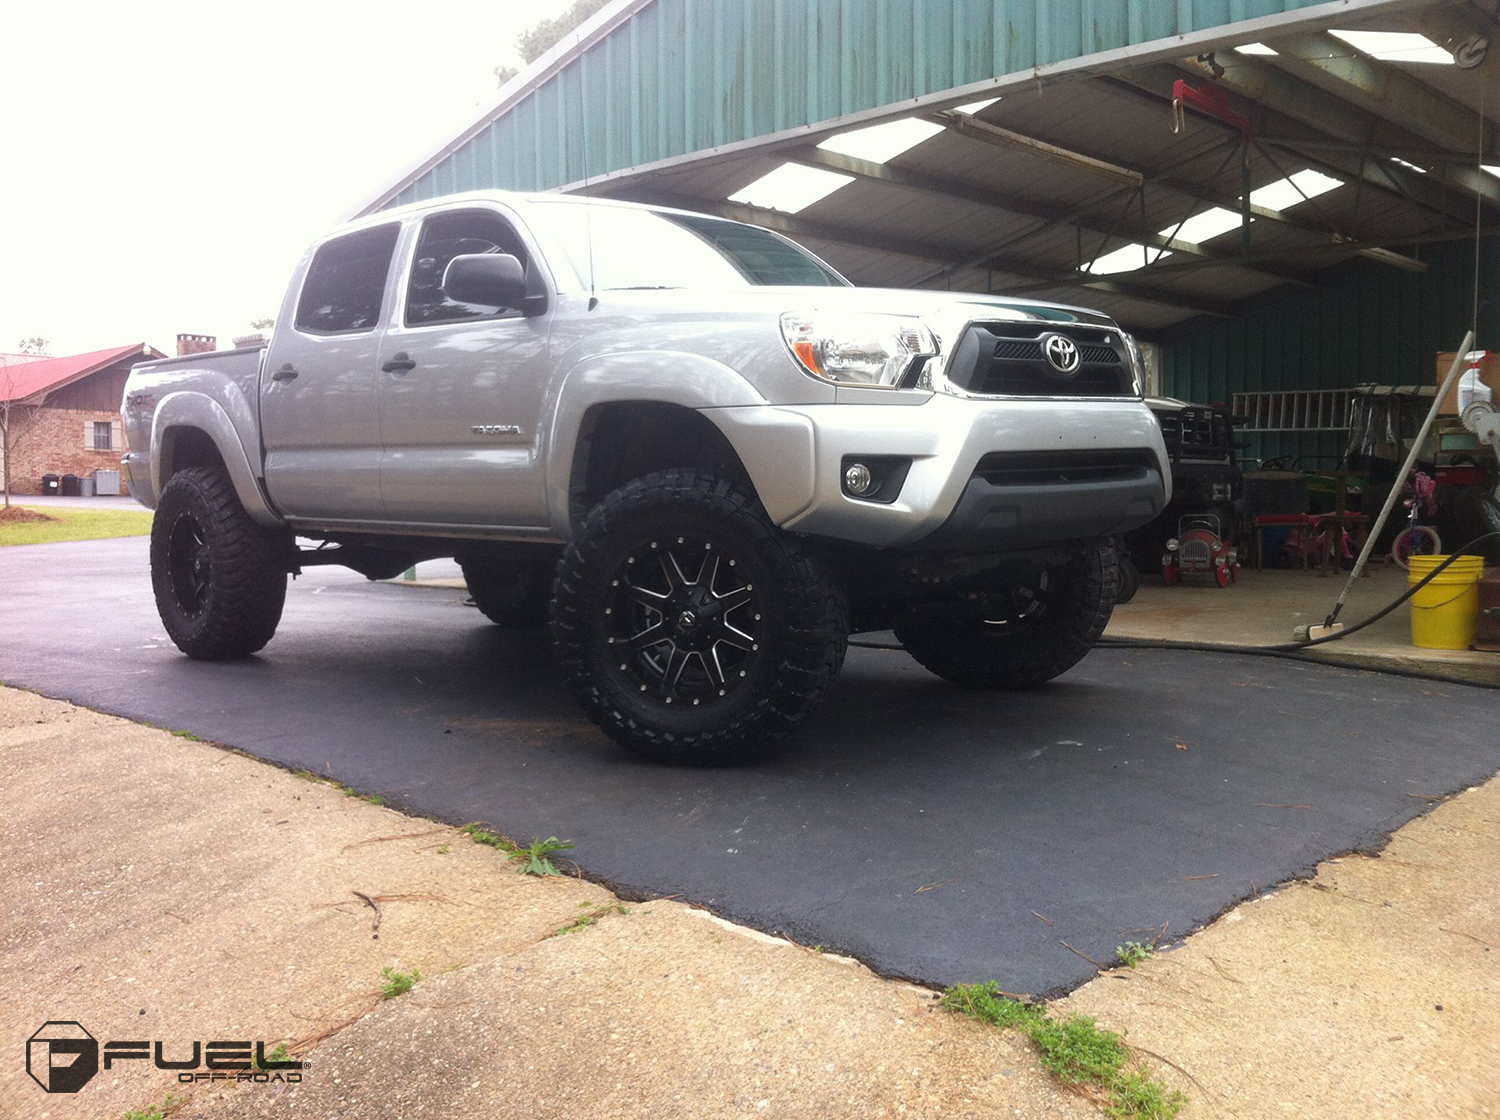 x toyota model edition t trd asp contents tacoma baja limited series mad wheels pickup